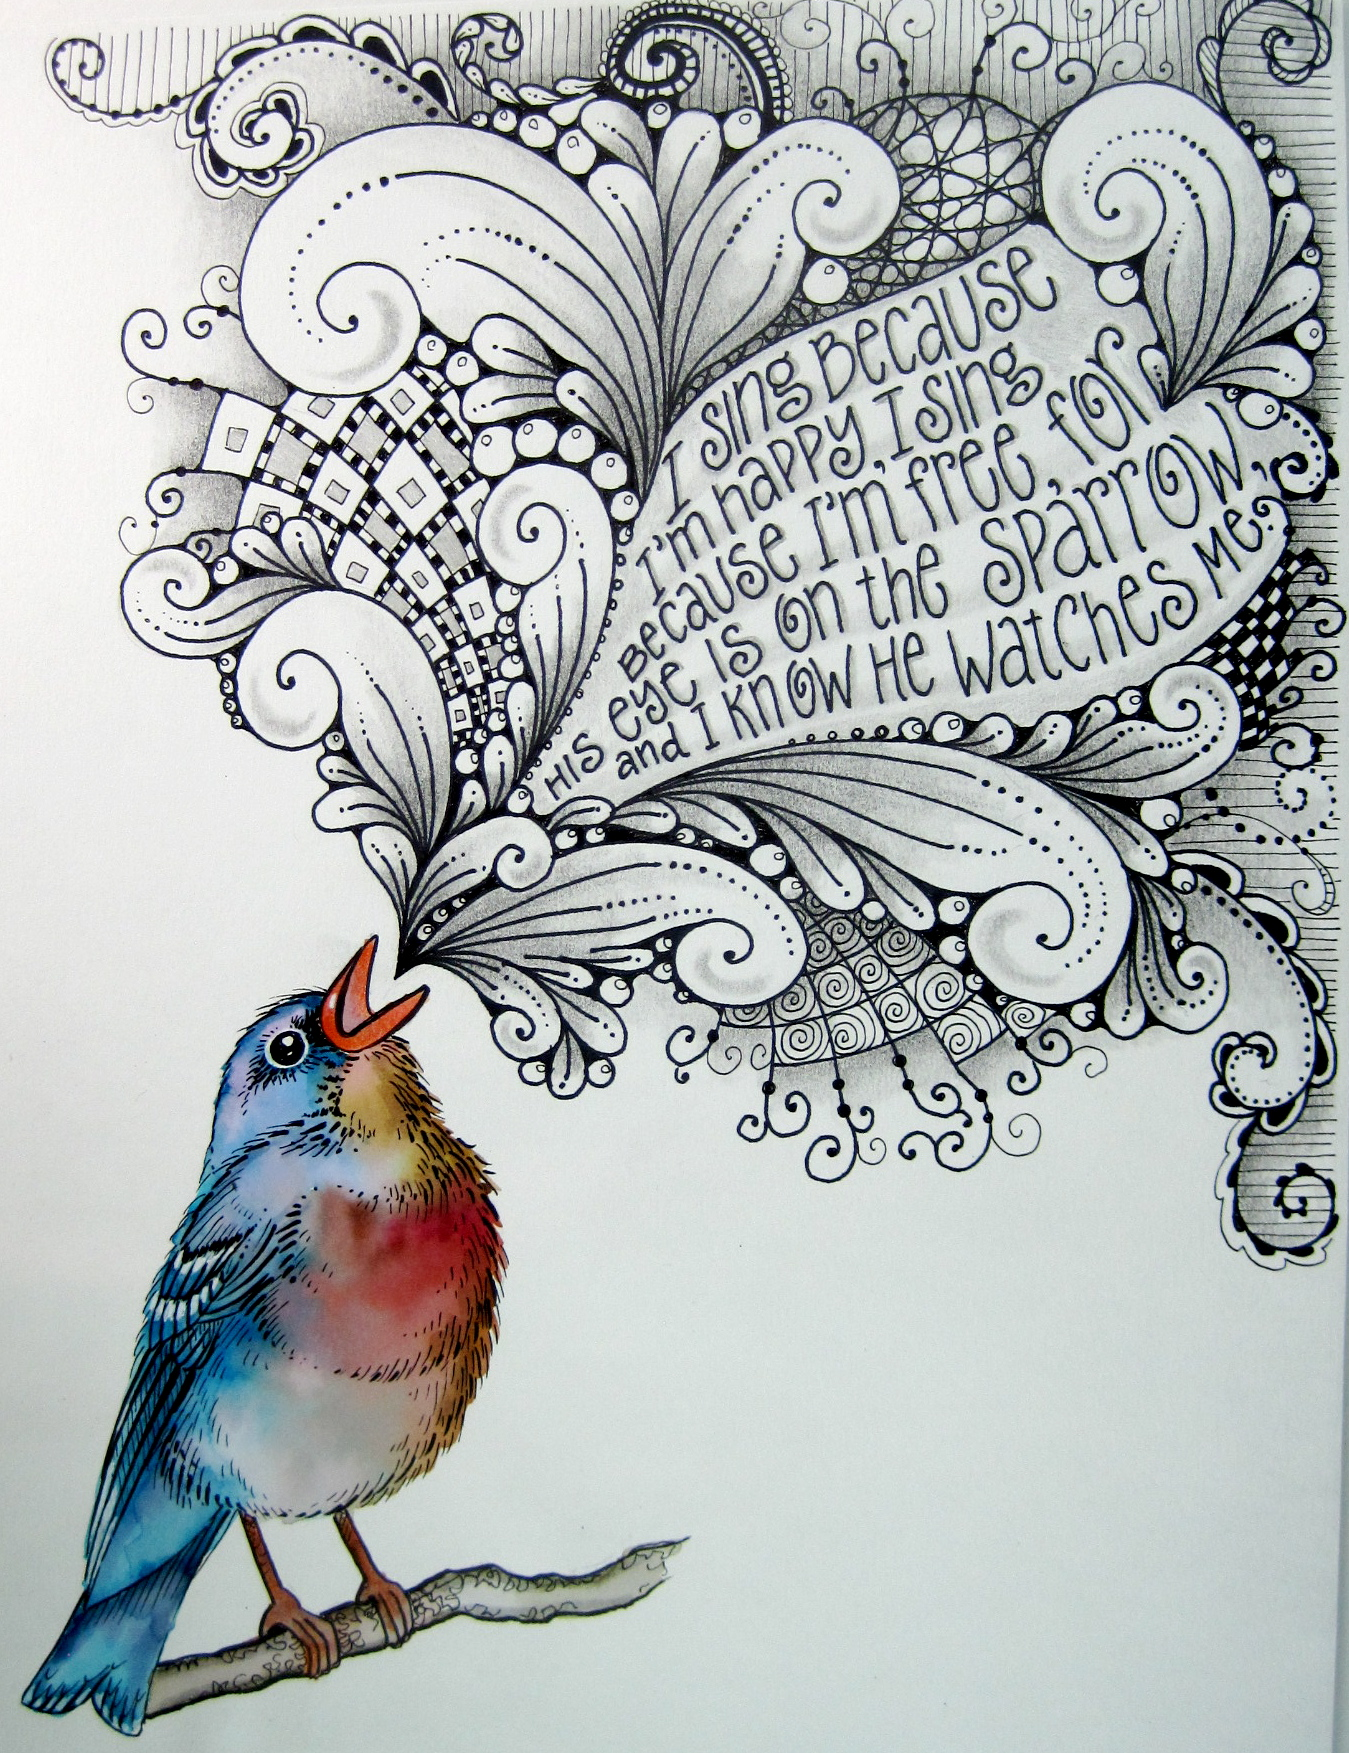 Drawn sparrow love Sing I sing because happy